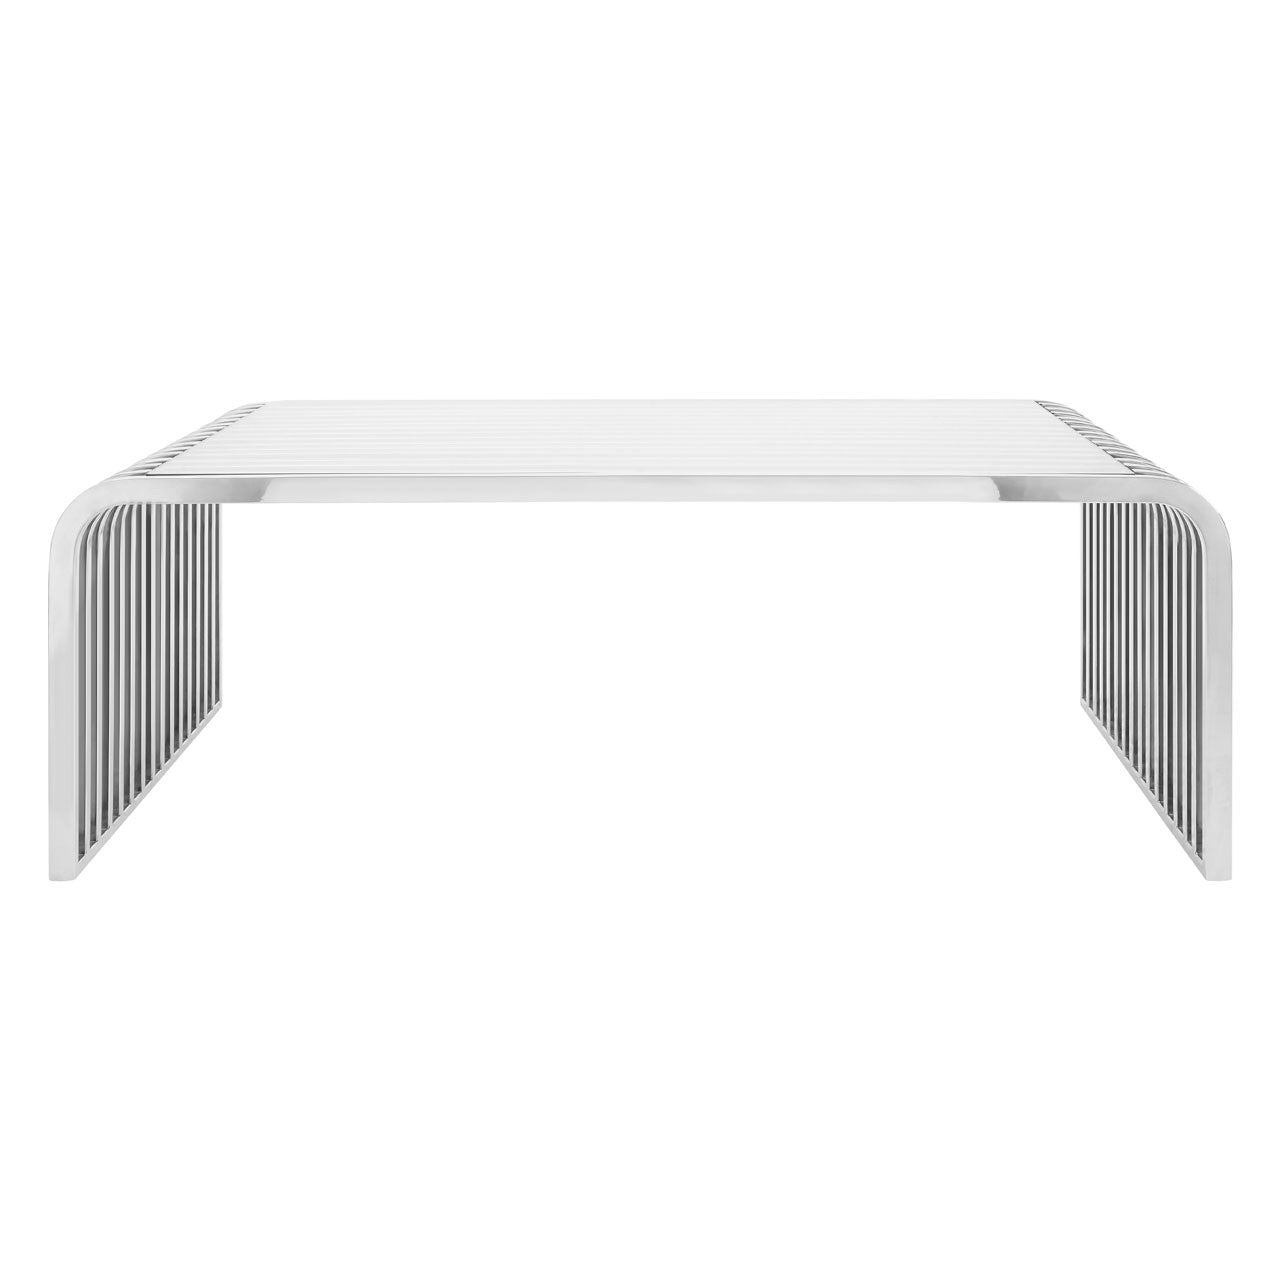 Serena Slatted Coffee Table